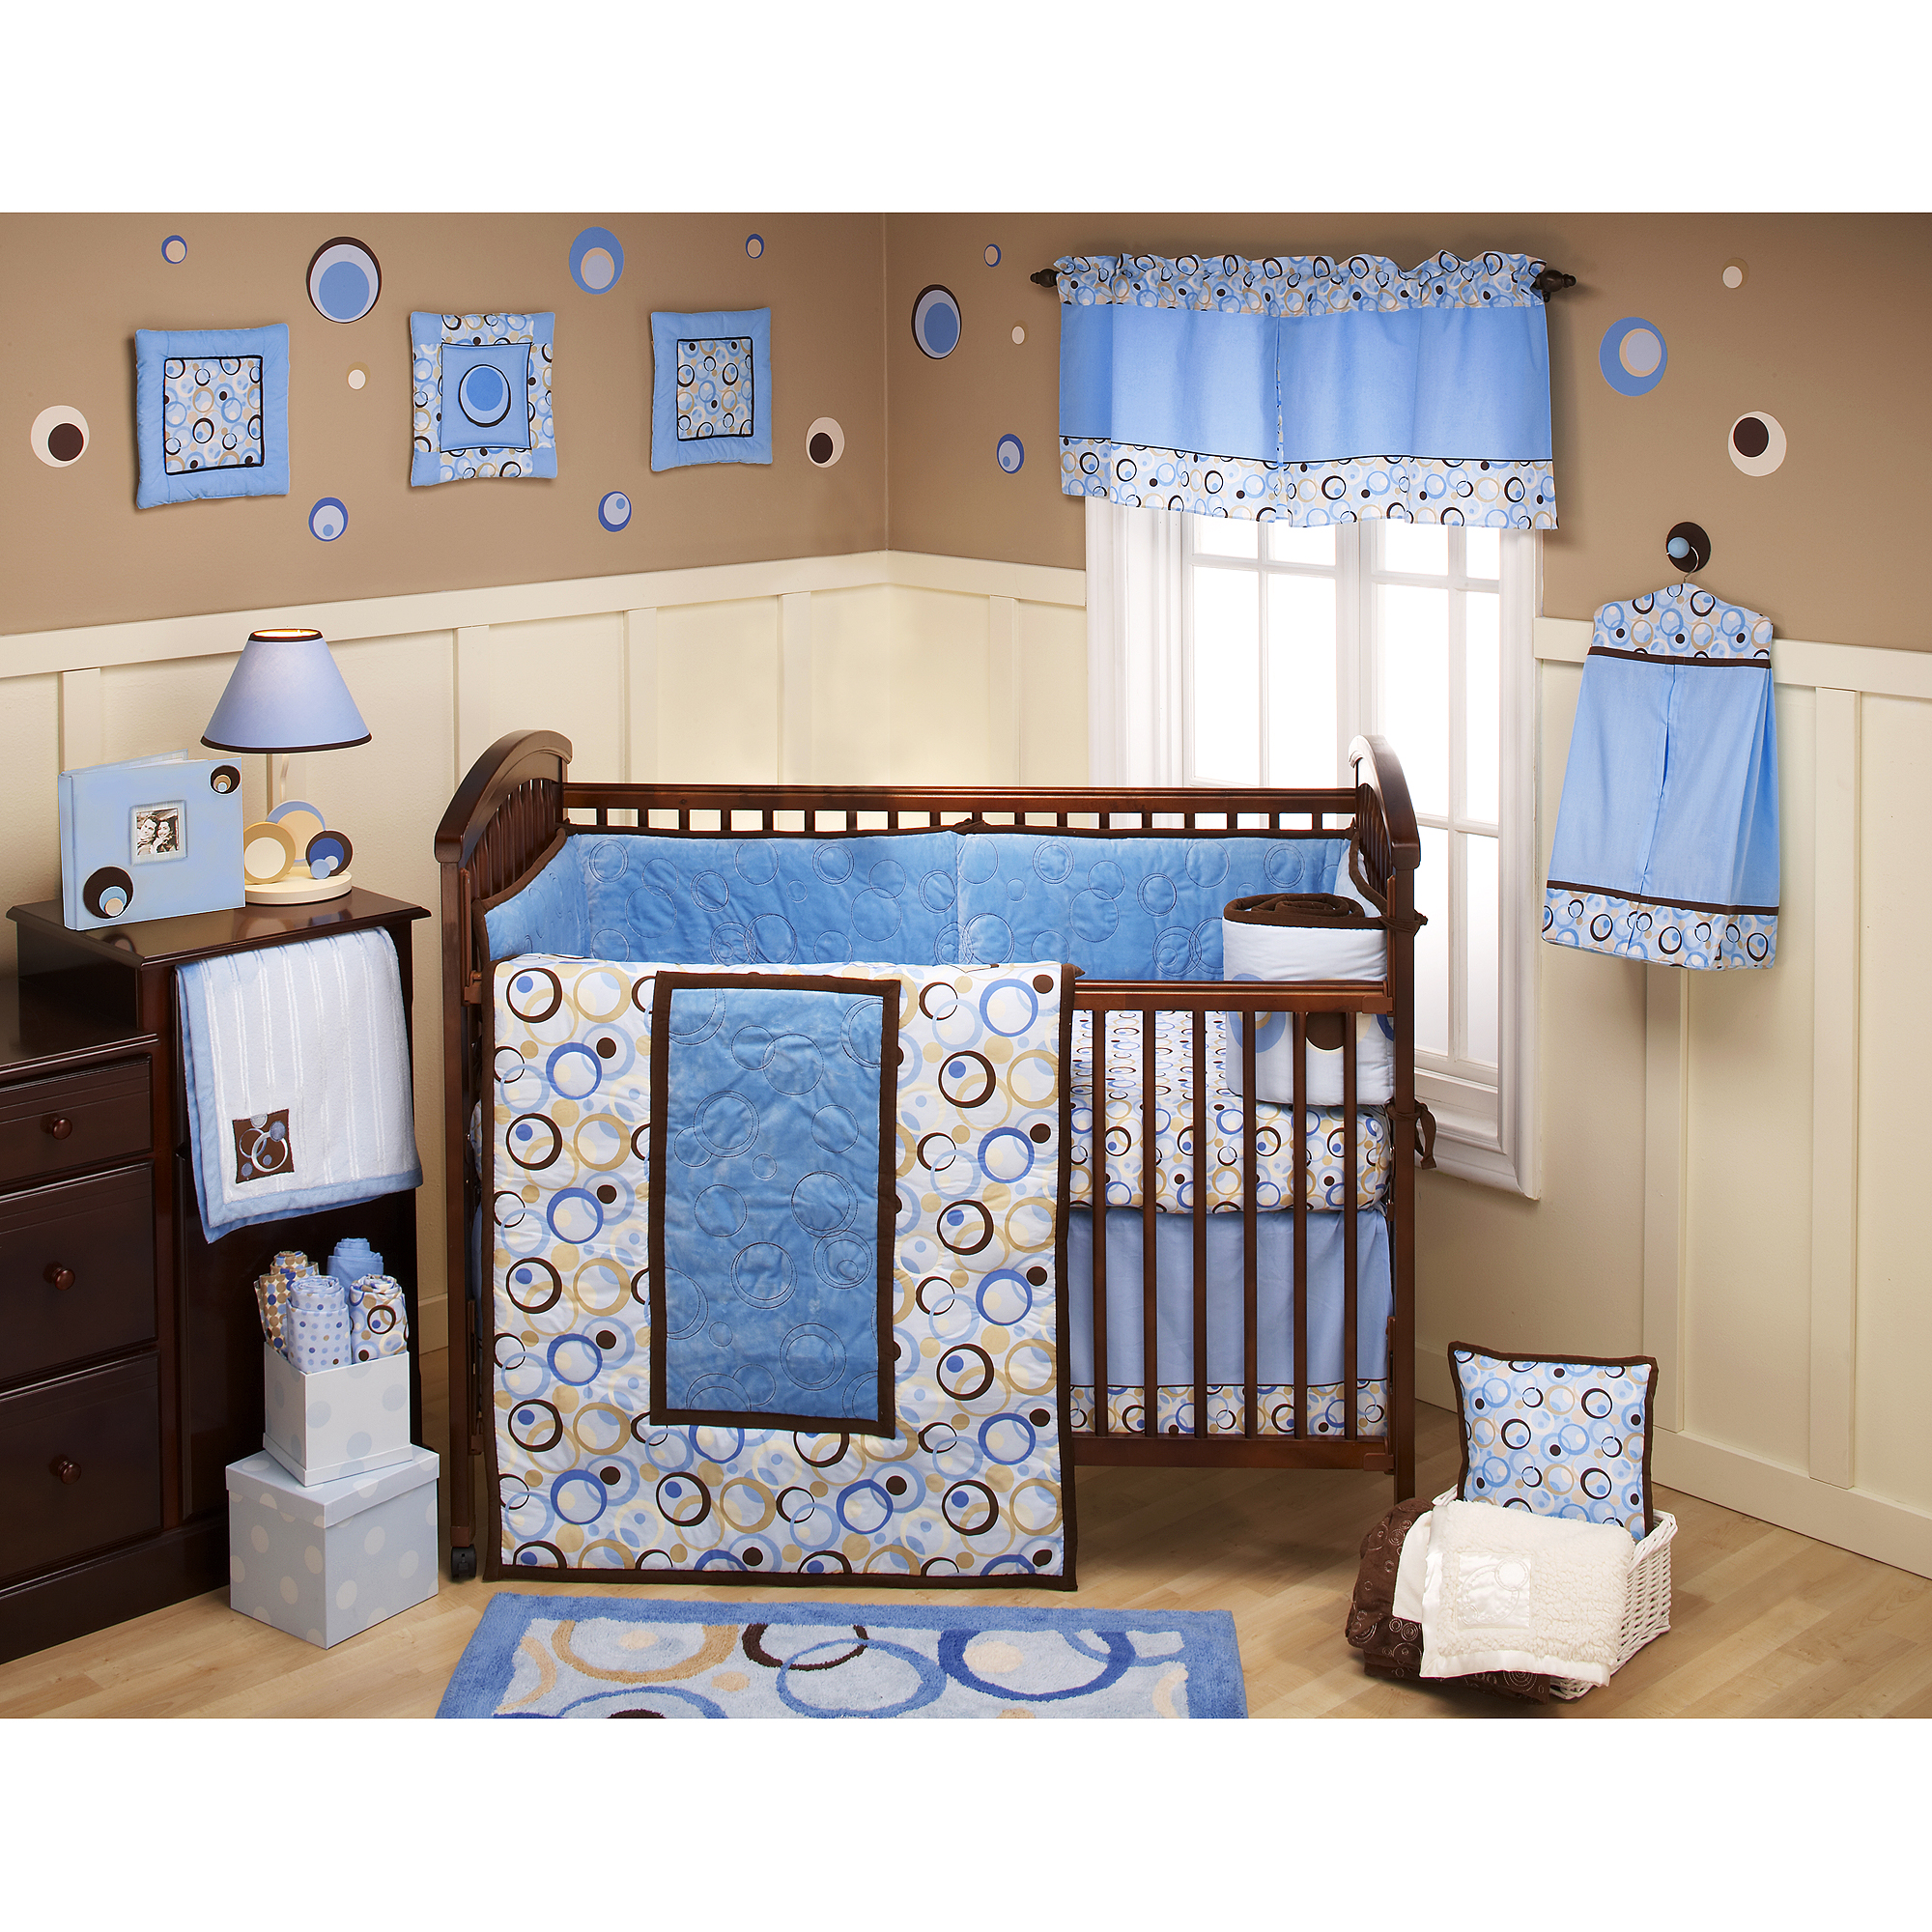 George Baby - Uptown 4-Piece Crib Bedding Set, Blue